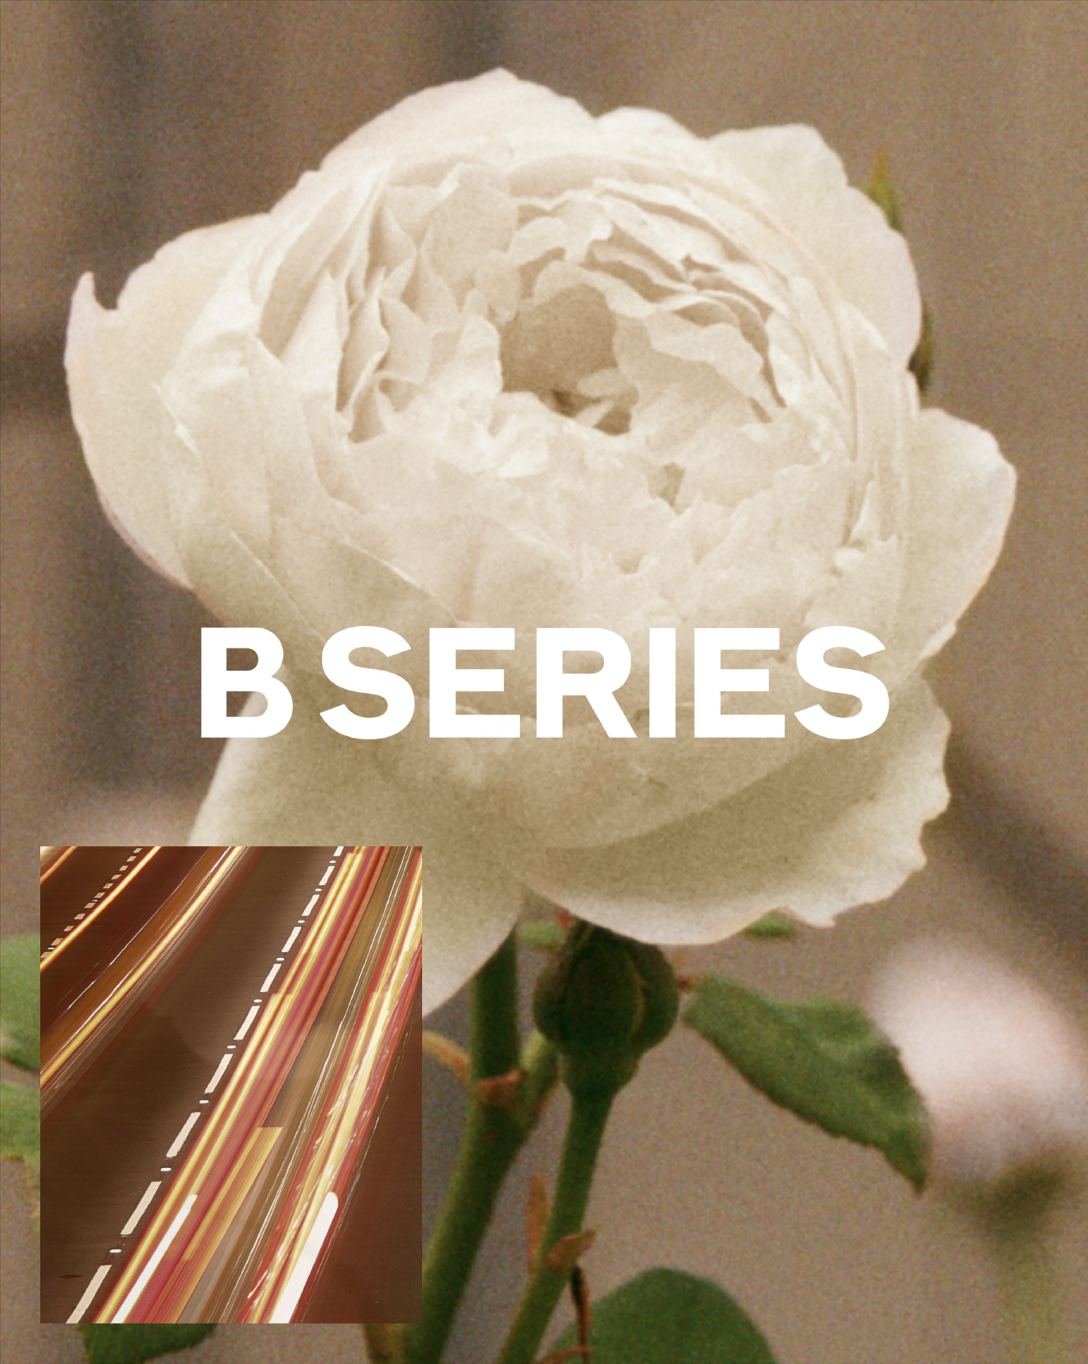 Burberry and the Art of Tease announces ongoing B Series